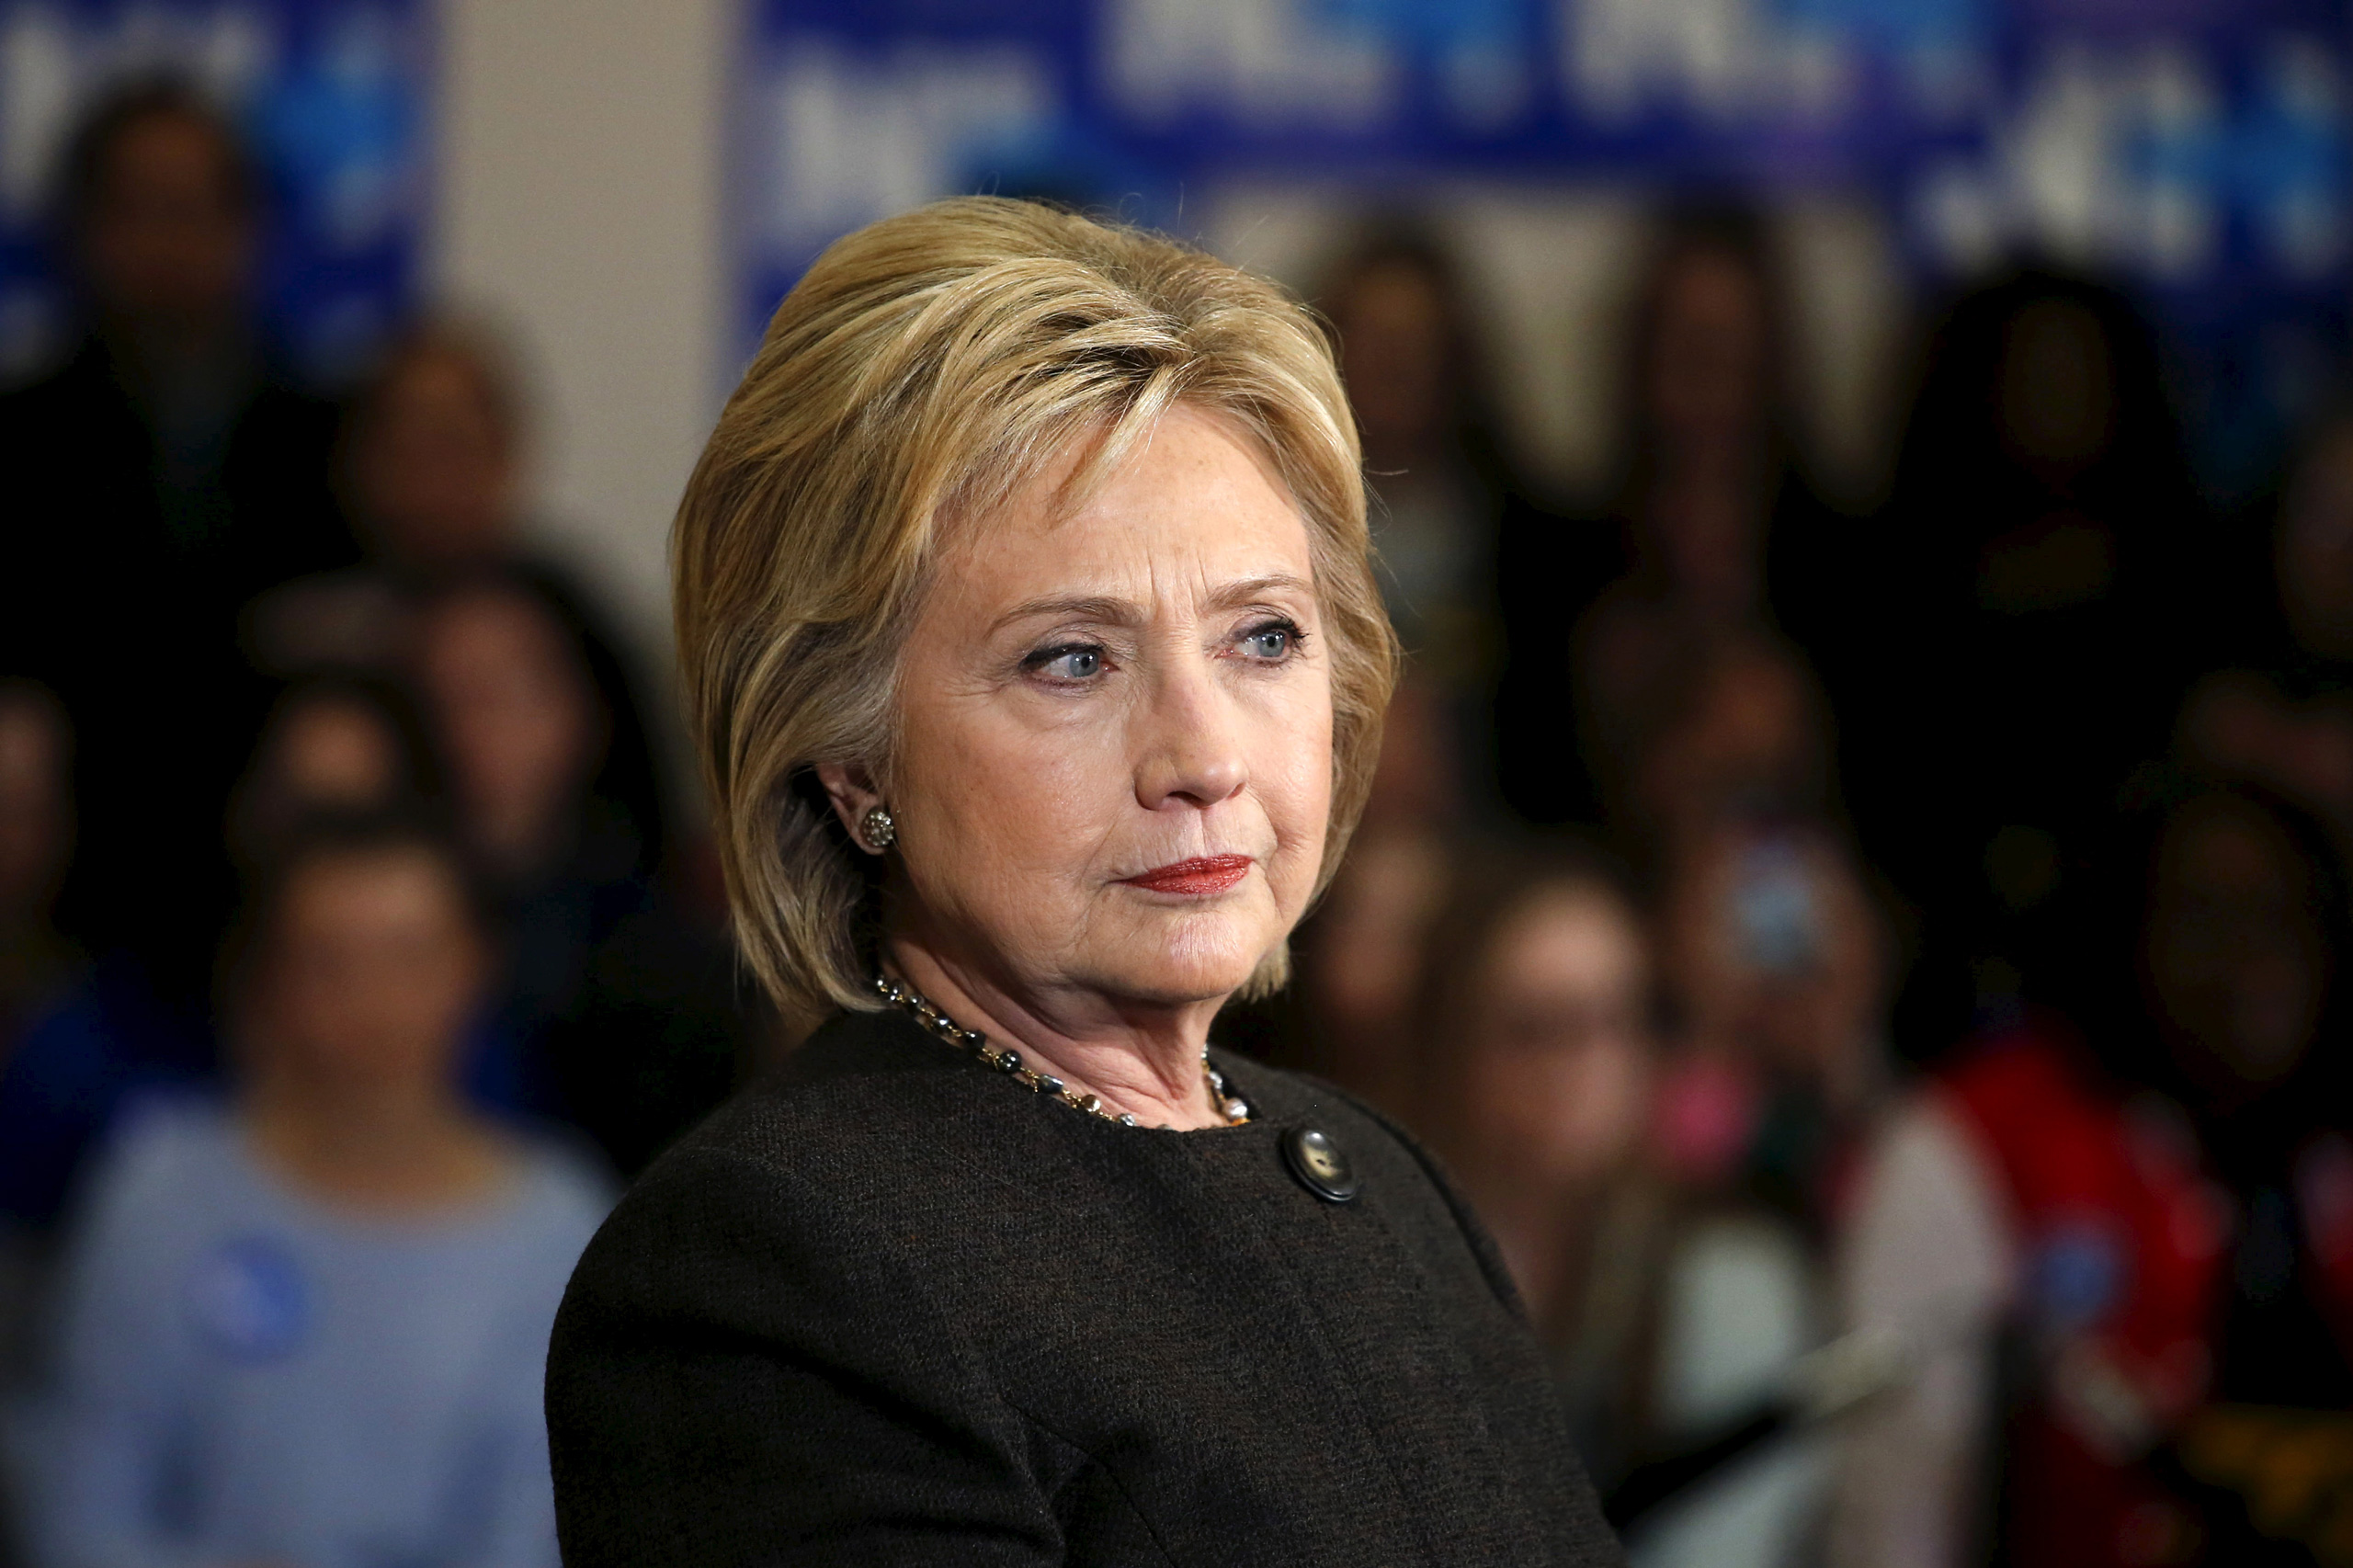 Democratic presidential candidate Hillary Clinton during a campaign rally at the Derry Boys and Girls Club in Derry, N.H., on Feb. 3, 2016.